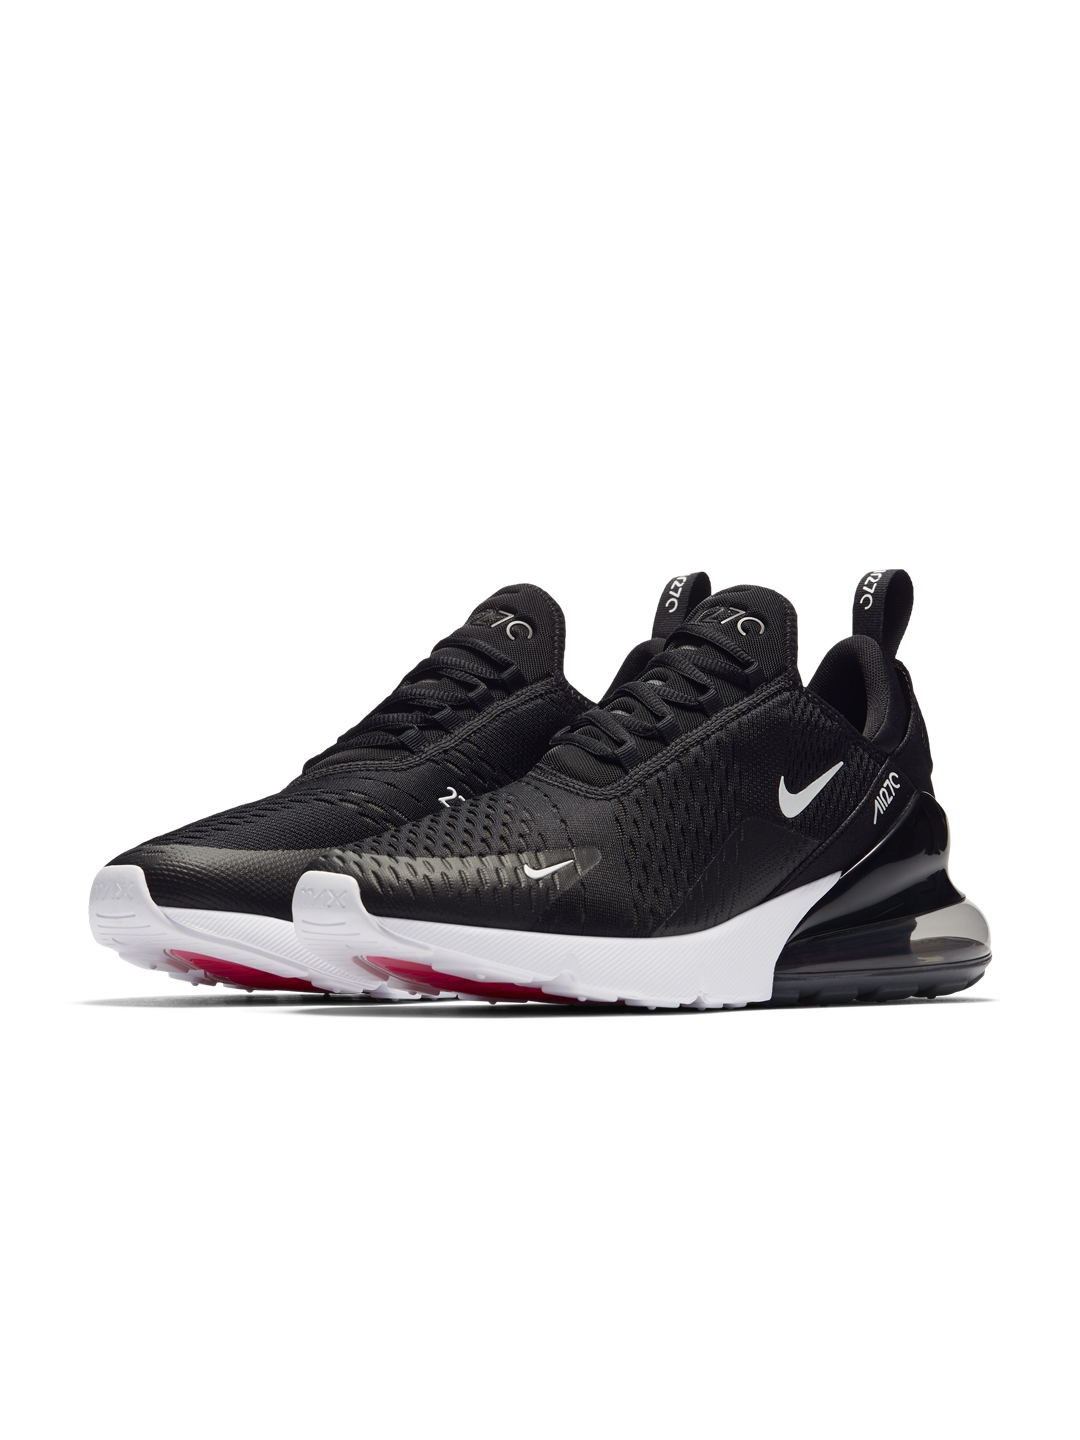 83a23c6b0d49b Buy Nike Men Black Air Max 270 Sneakers - Casual Shoes for Men ...